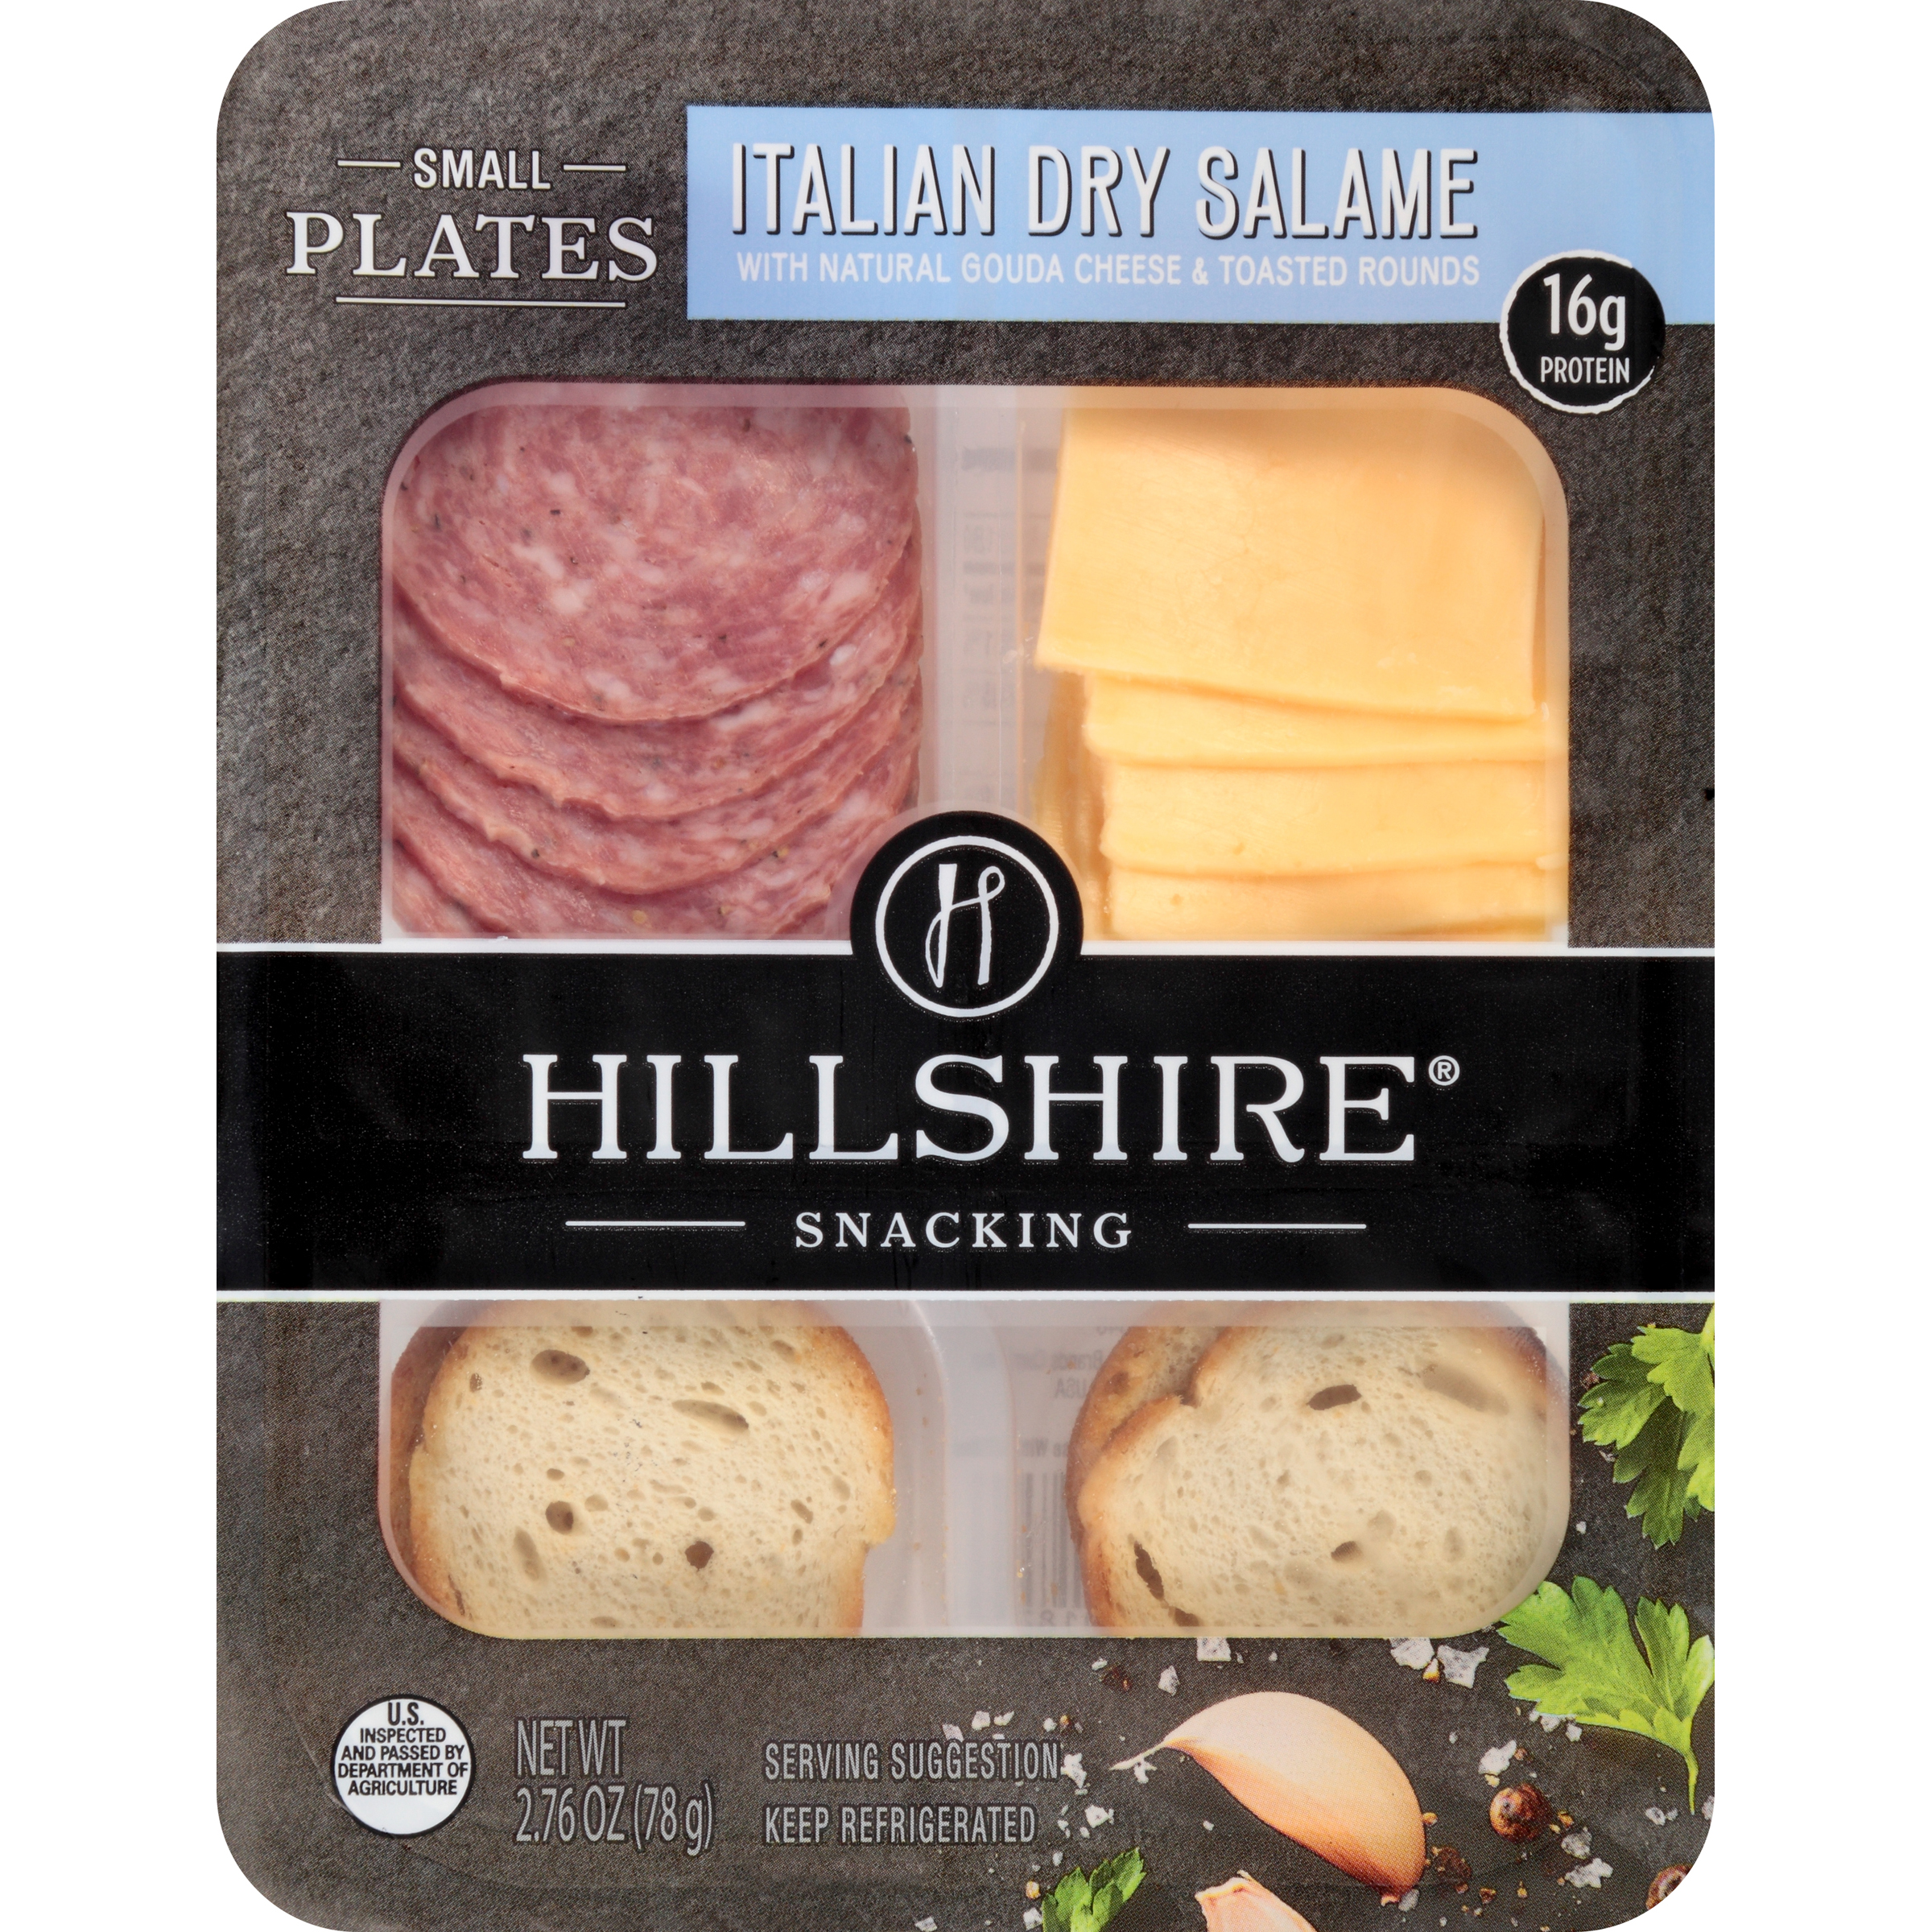 Hillshire® Snacking Small Plates, Italian Dry Salame and Gouda Cheese, 2.76 oz.